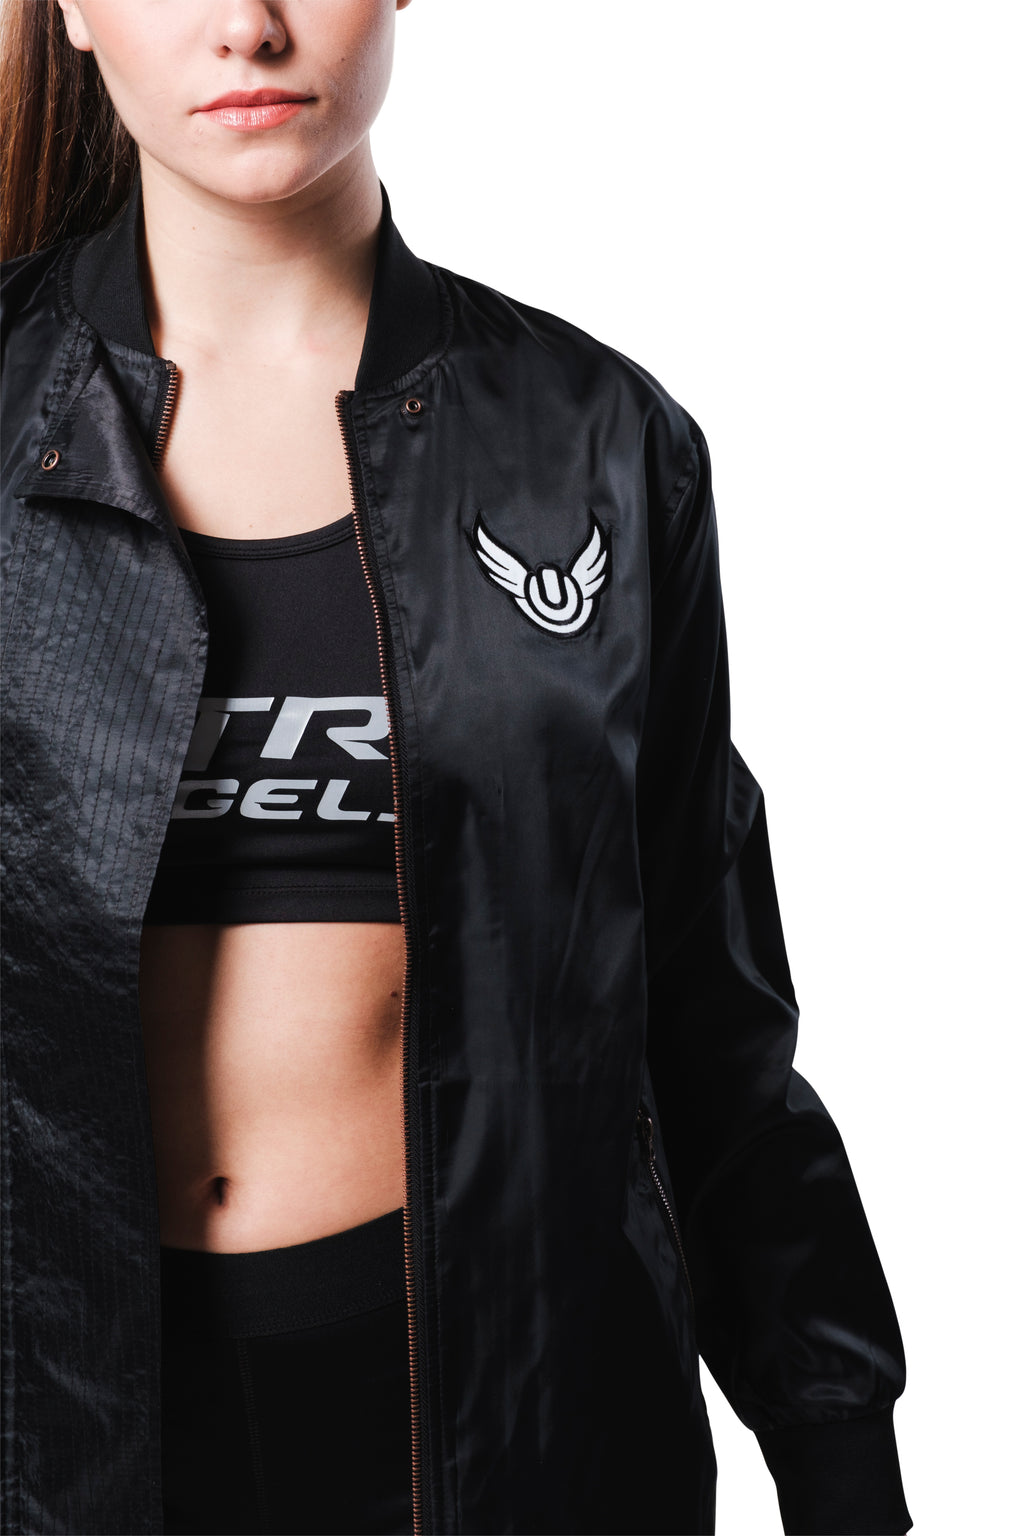 Ultra Angels Dancer Jacket